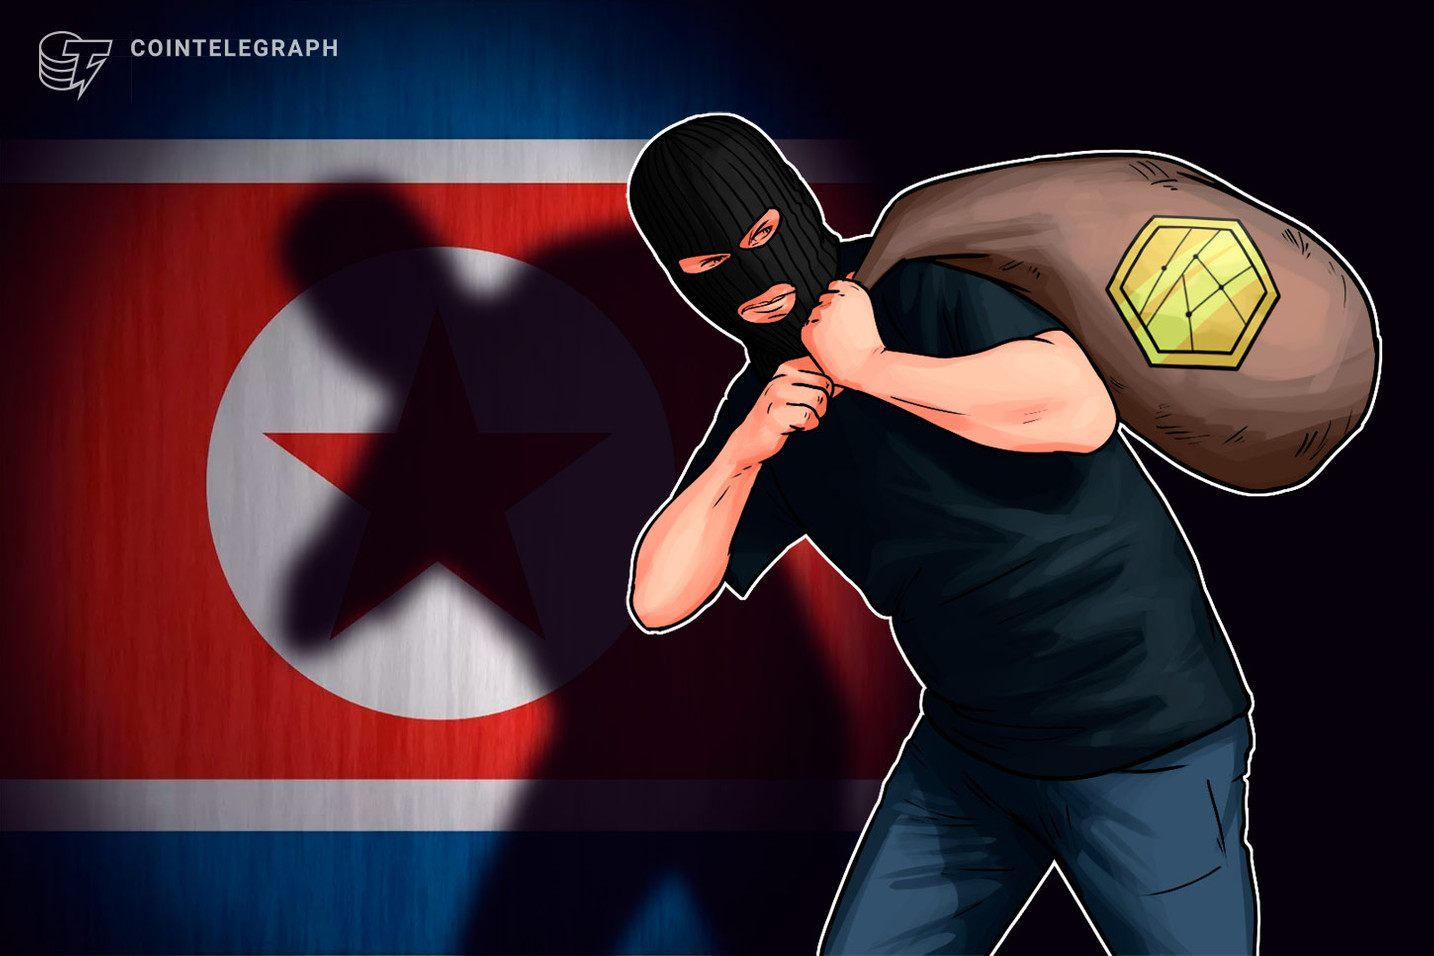 North Korea Launched Cryptocurrency Attacks in Response to Sanctions, Says FBI